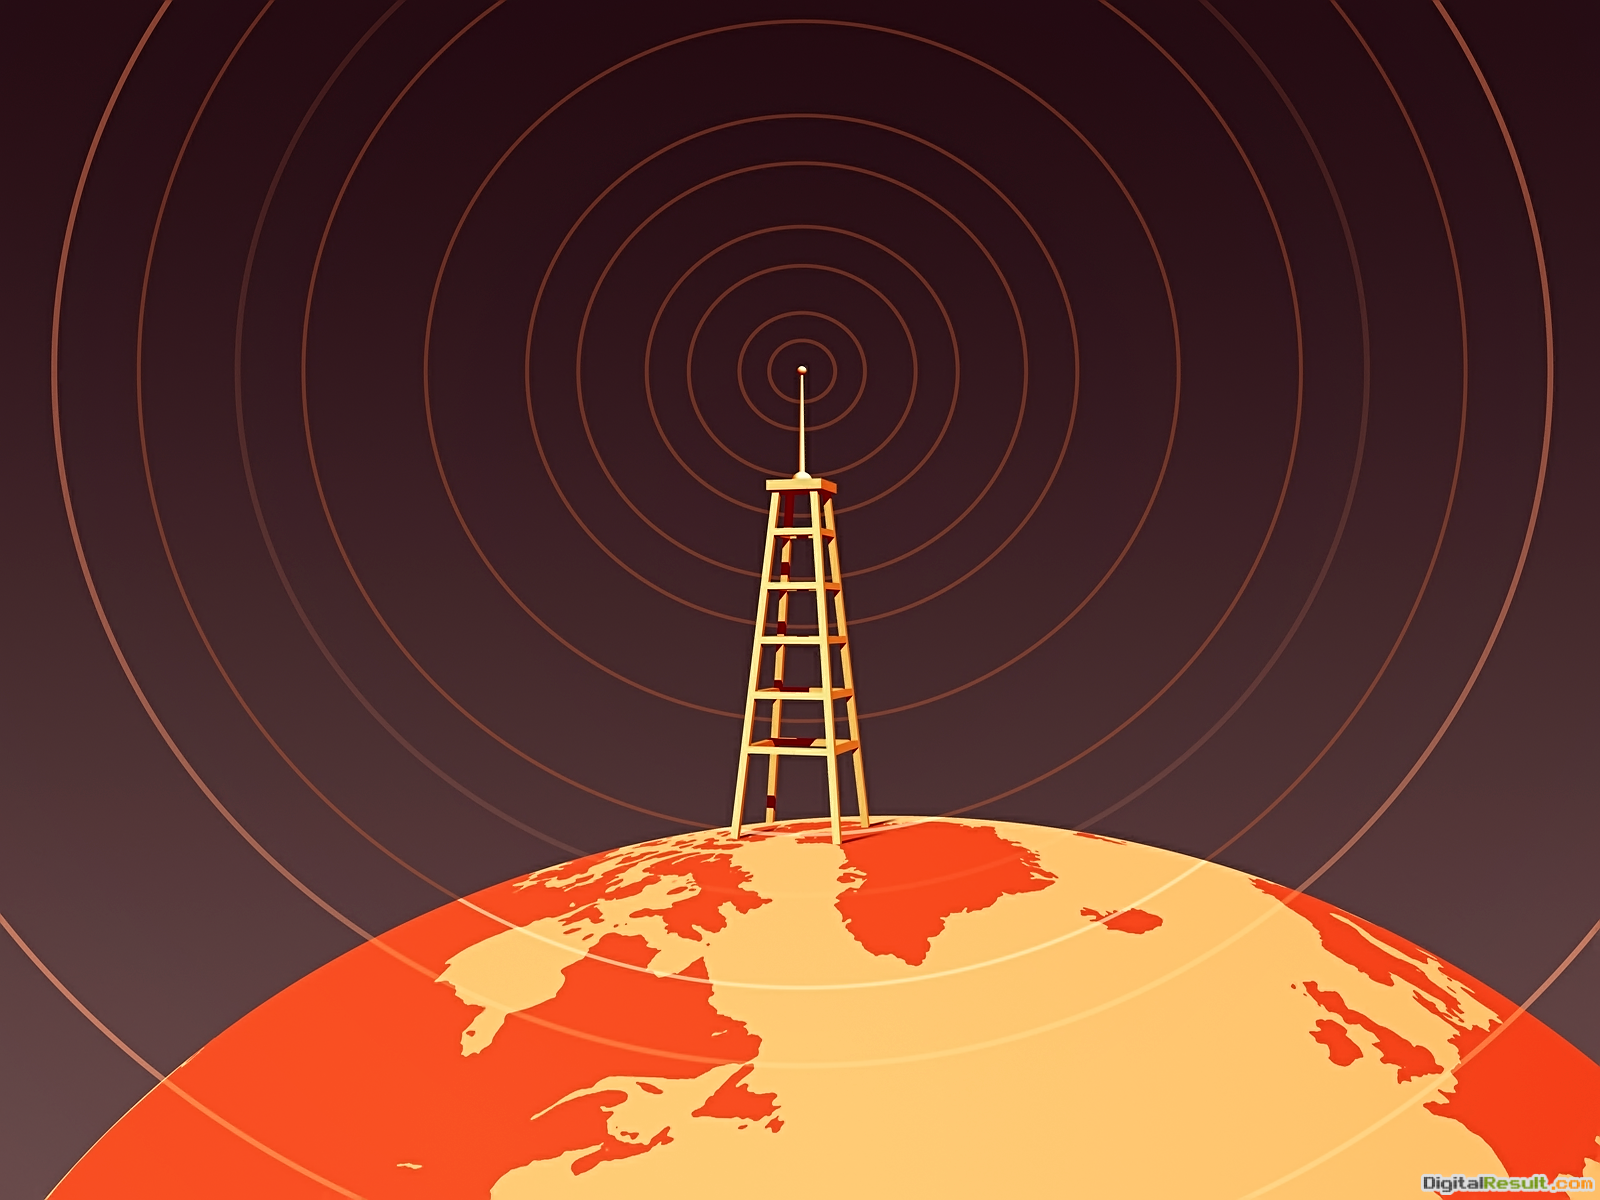 Retro Earth Radio Tower wallpaper – Conservative Morality is 345